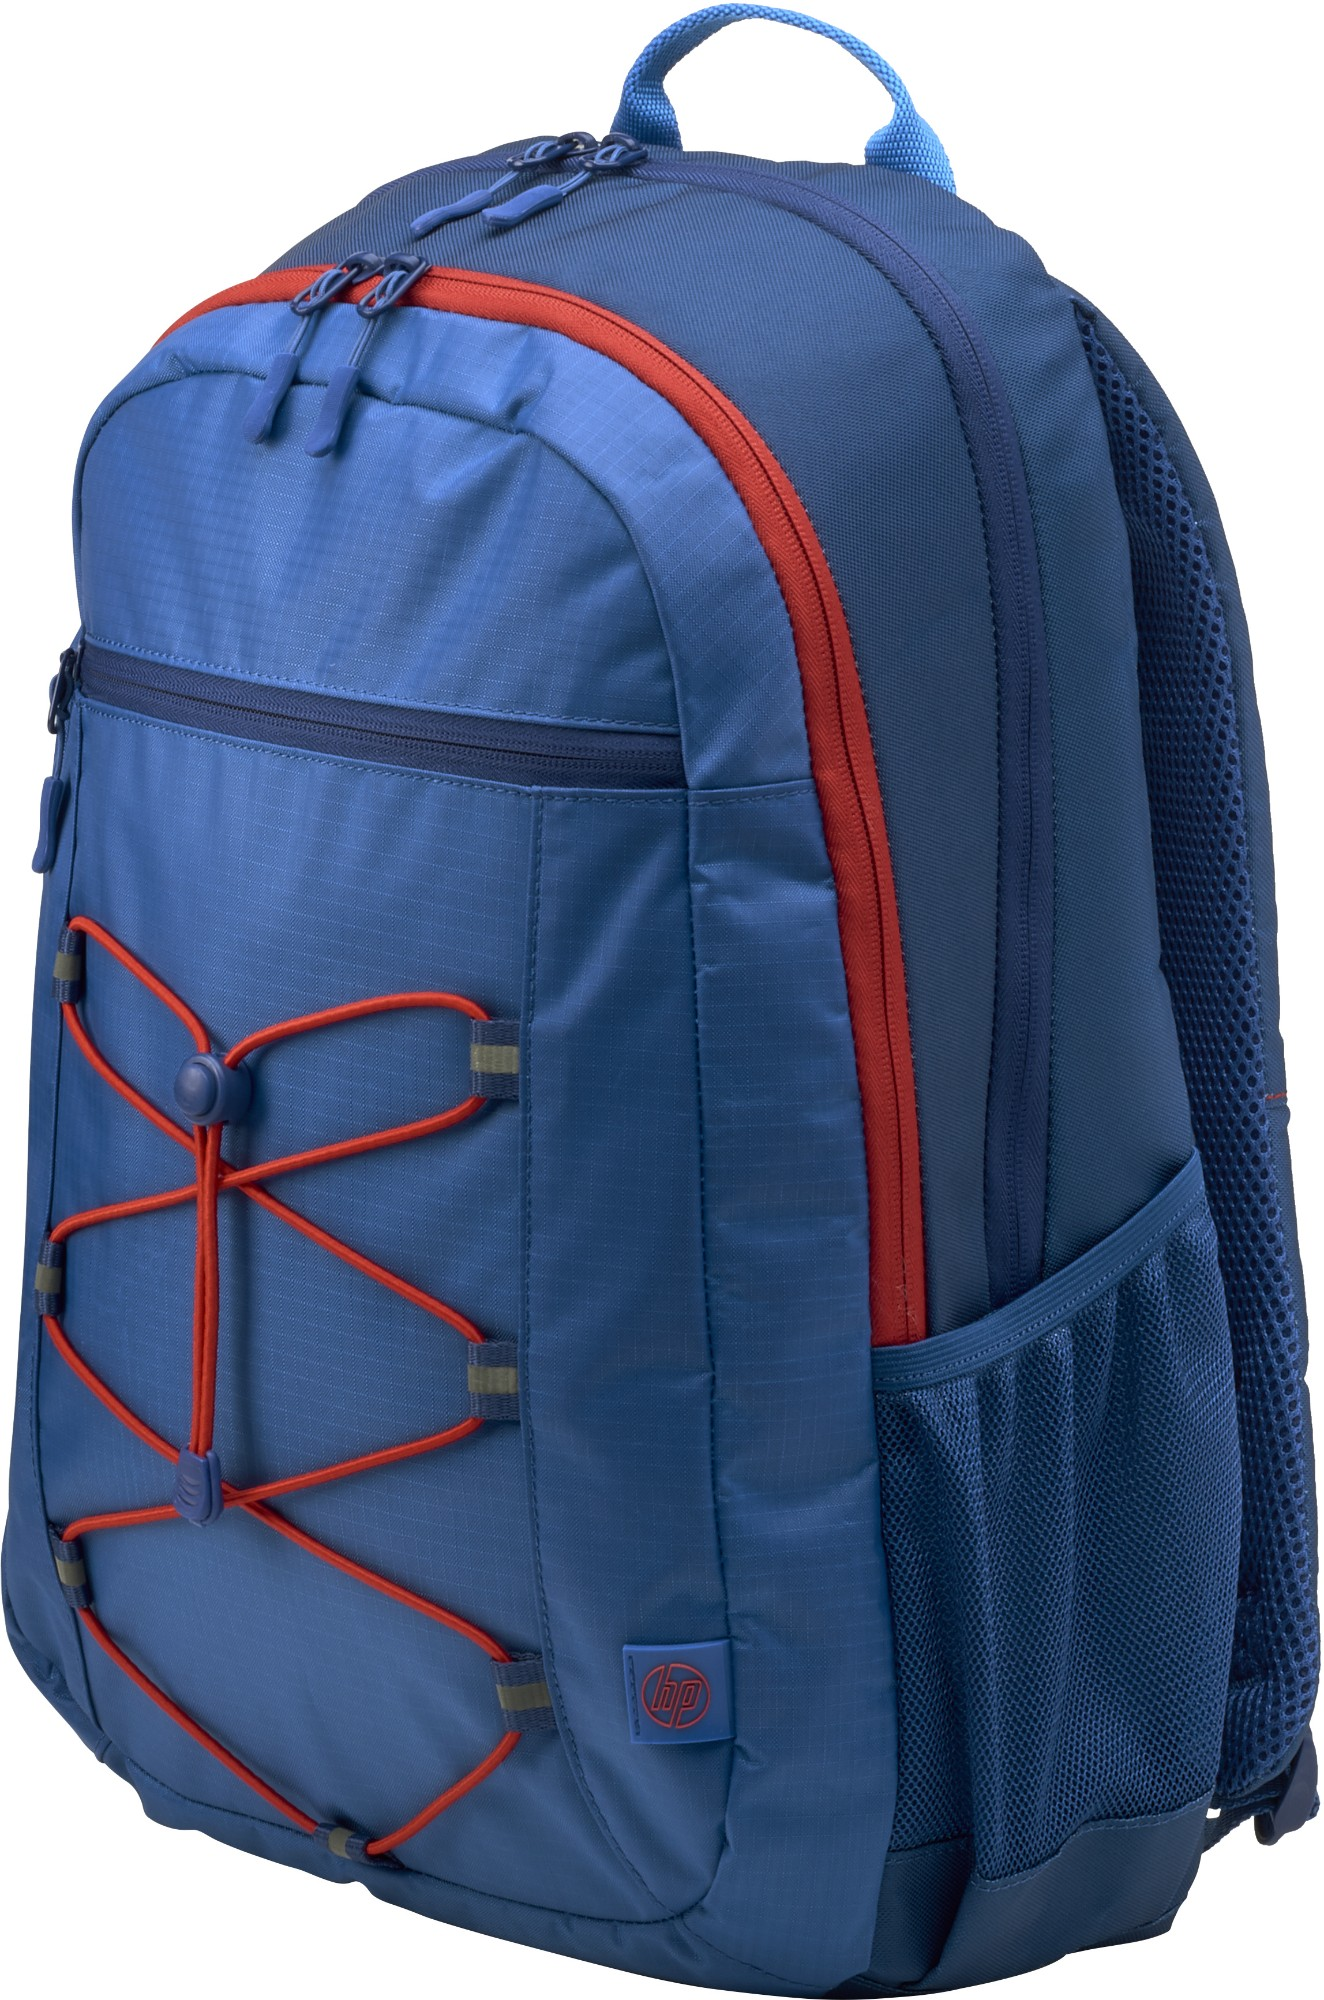 HP Active Marine Blue/Coral Red backpack Fabric Blue,Red